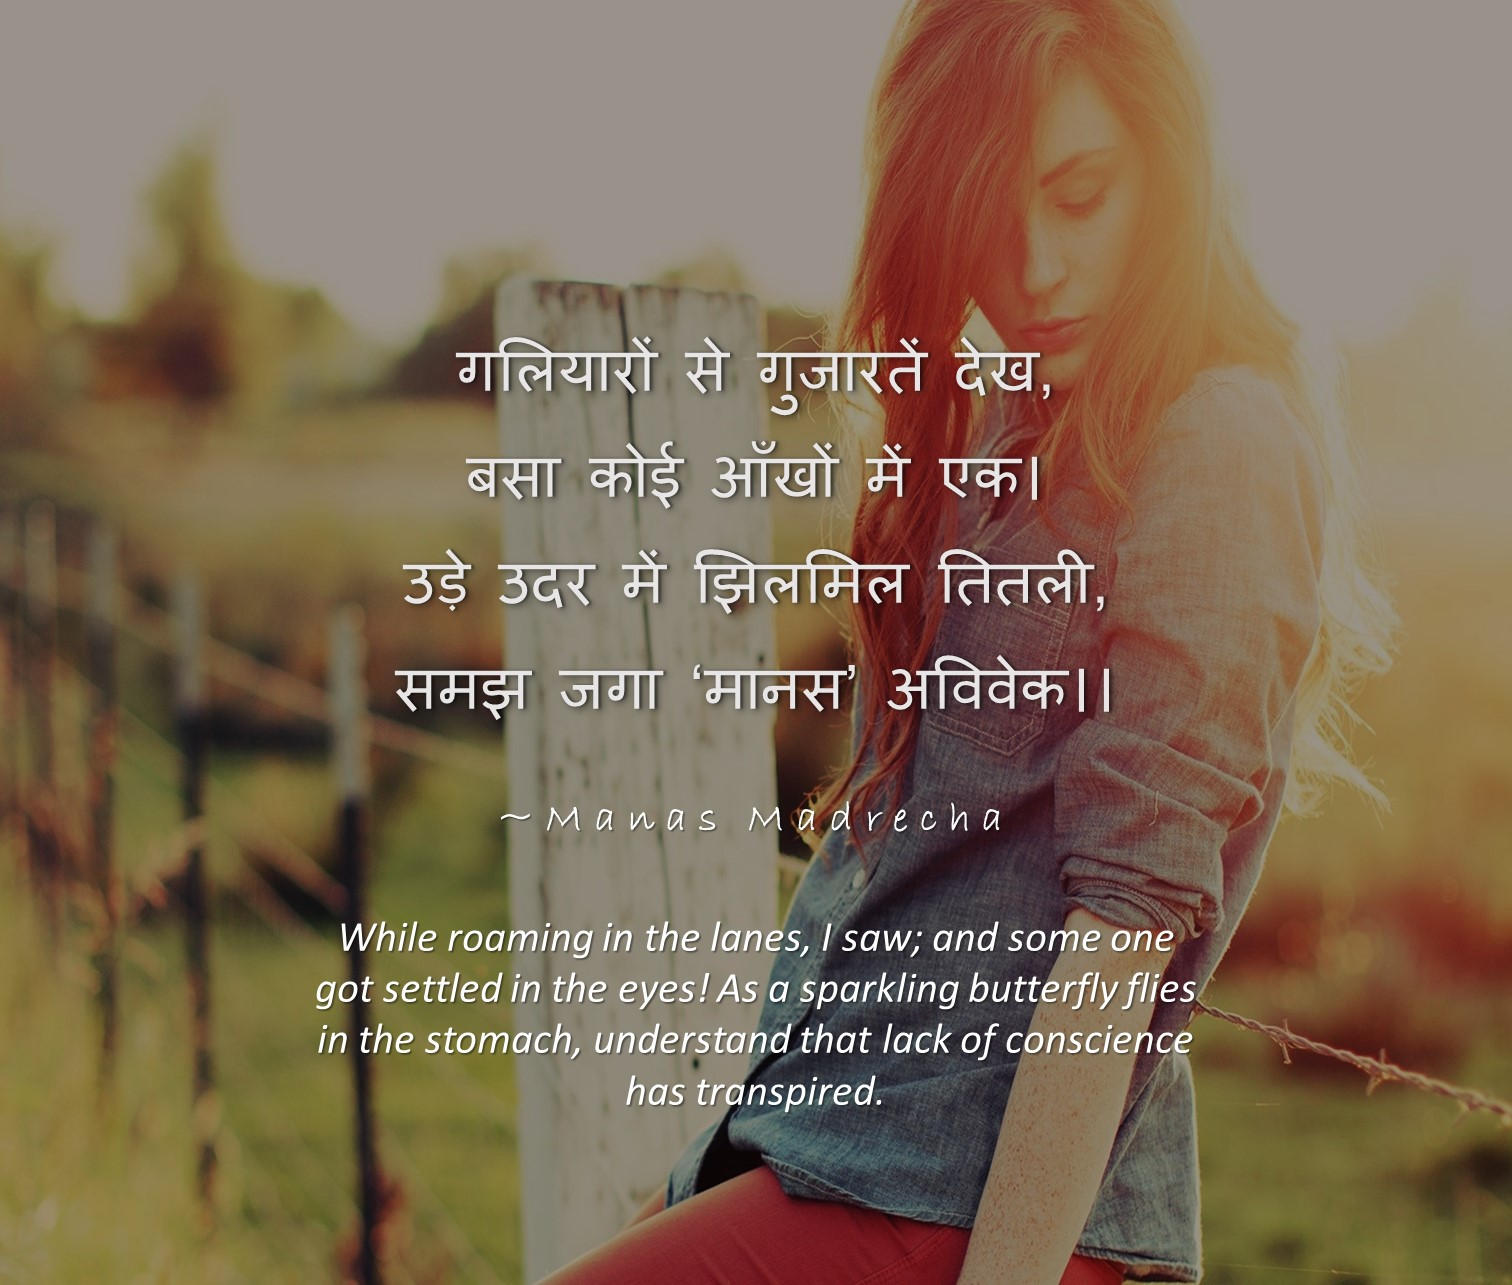 poem on love, Manas Madrecha, Manas Madrecha poems, poems by Manas Madrecha, Manas Madrecha quotes, love quotes, quotes on love, Manas Madrecha blog, simplifying universe, teenage quotes, teenage poem, youth poem, youth quotes, quotes on youth, romantic poem, beautiful girl, hot girl, girl looking, cute girl, pretty girl, girl looking away, sad girl, happy girl, girl thinking, girl in sunset, girl in sunshine, girl in sun, girl on fence, girl hair teenage girl